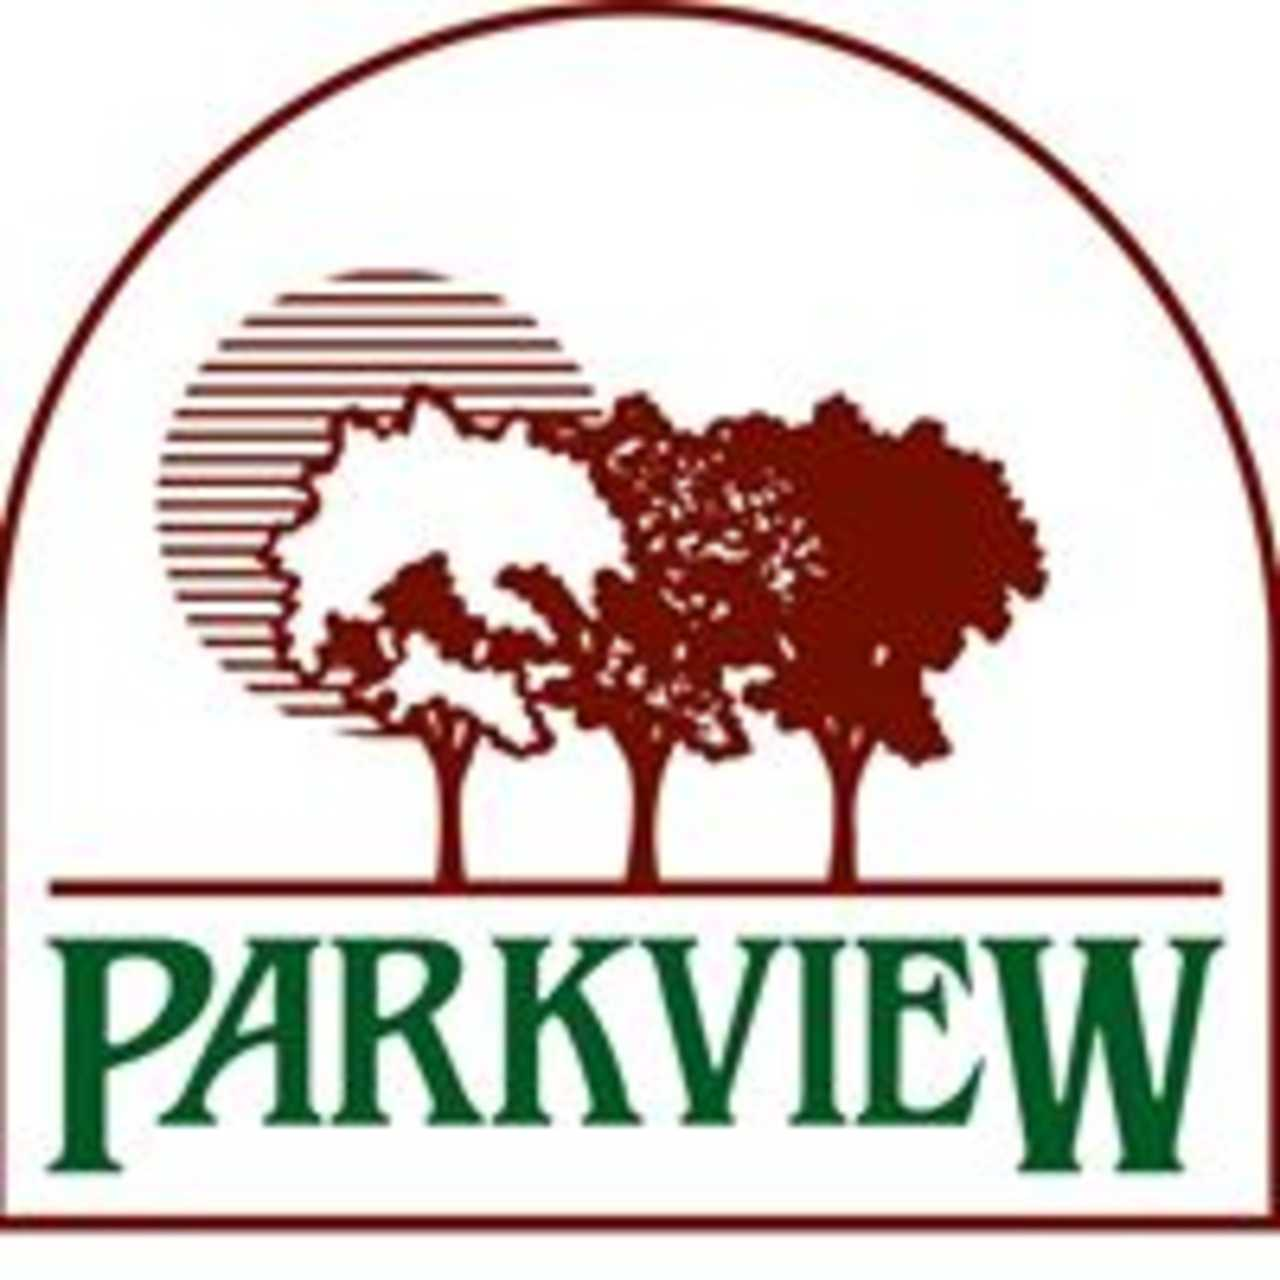 Parkview Retirement Community - Medical - Assisted Living in Freeport IL